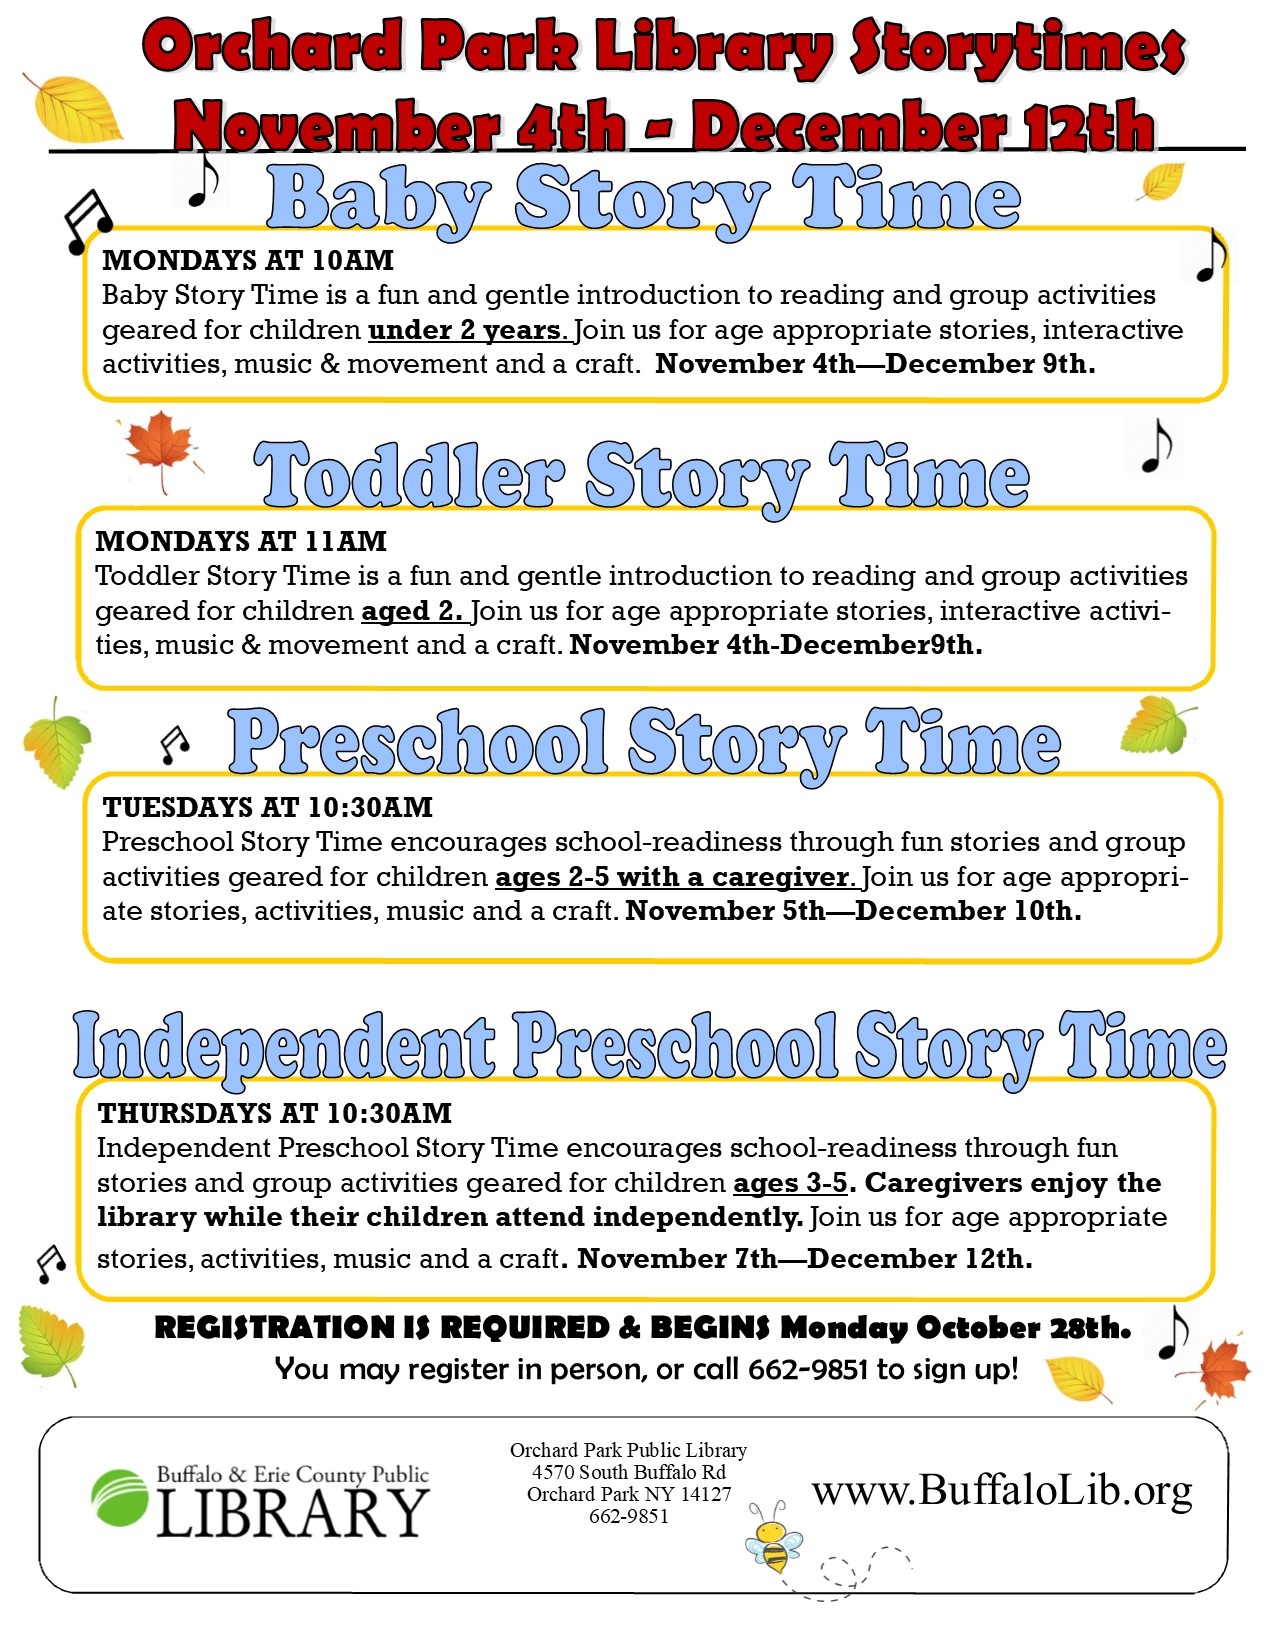 Independent Preschool Storytime